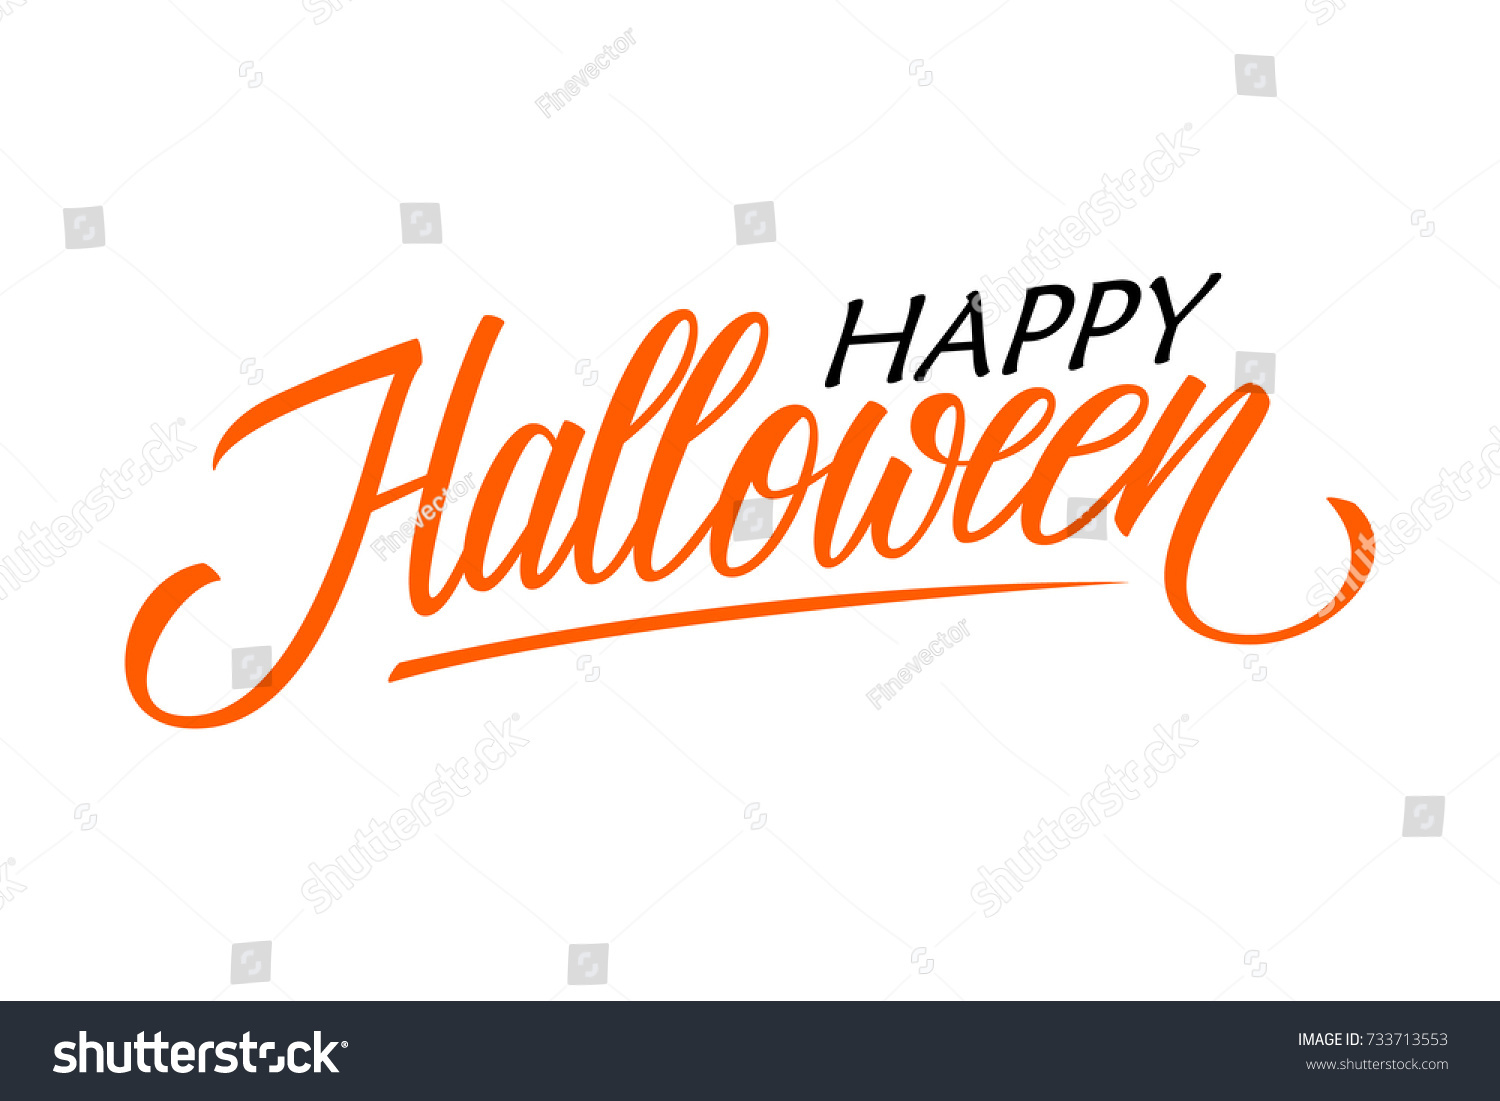 Happy halloween card template hand drawn stock vector 733713553 happy halloween card template hand drawn lettering creative text design for holiday greetings kristyandbryce Images